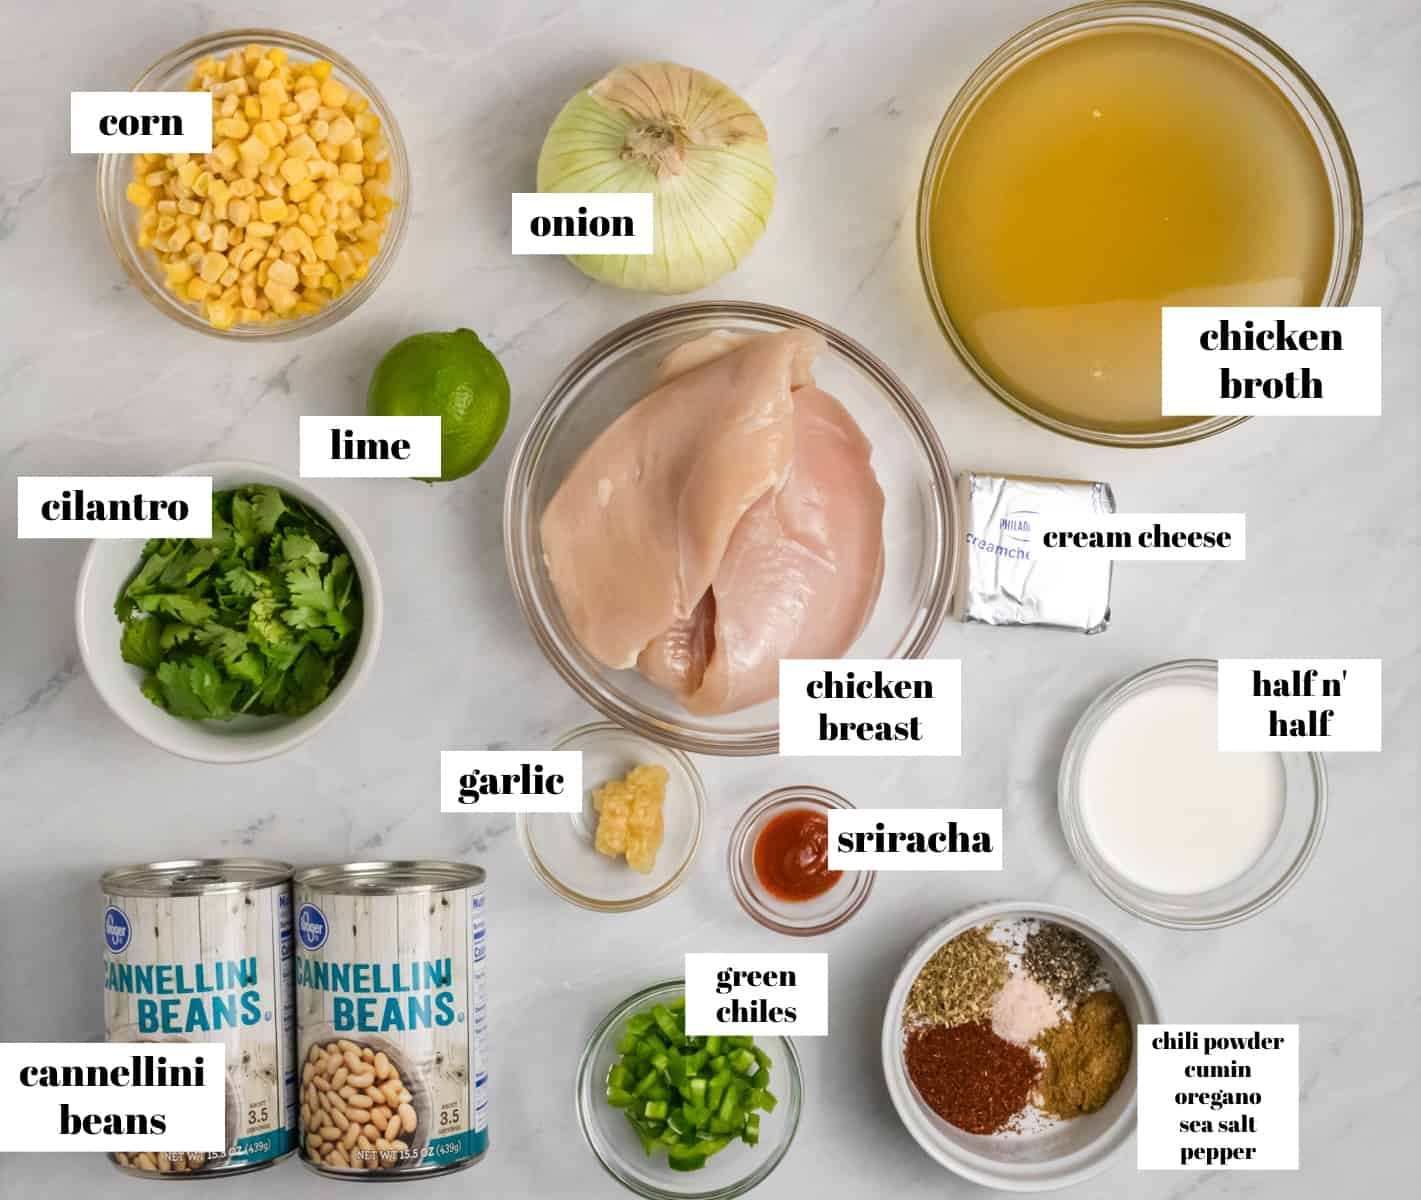 Chicken, cilantro, cream cheese, broth, beans etc. on counter labeled.